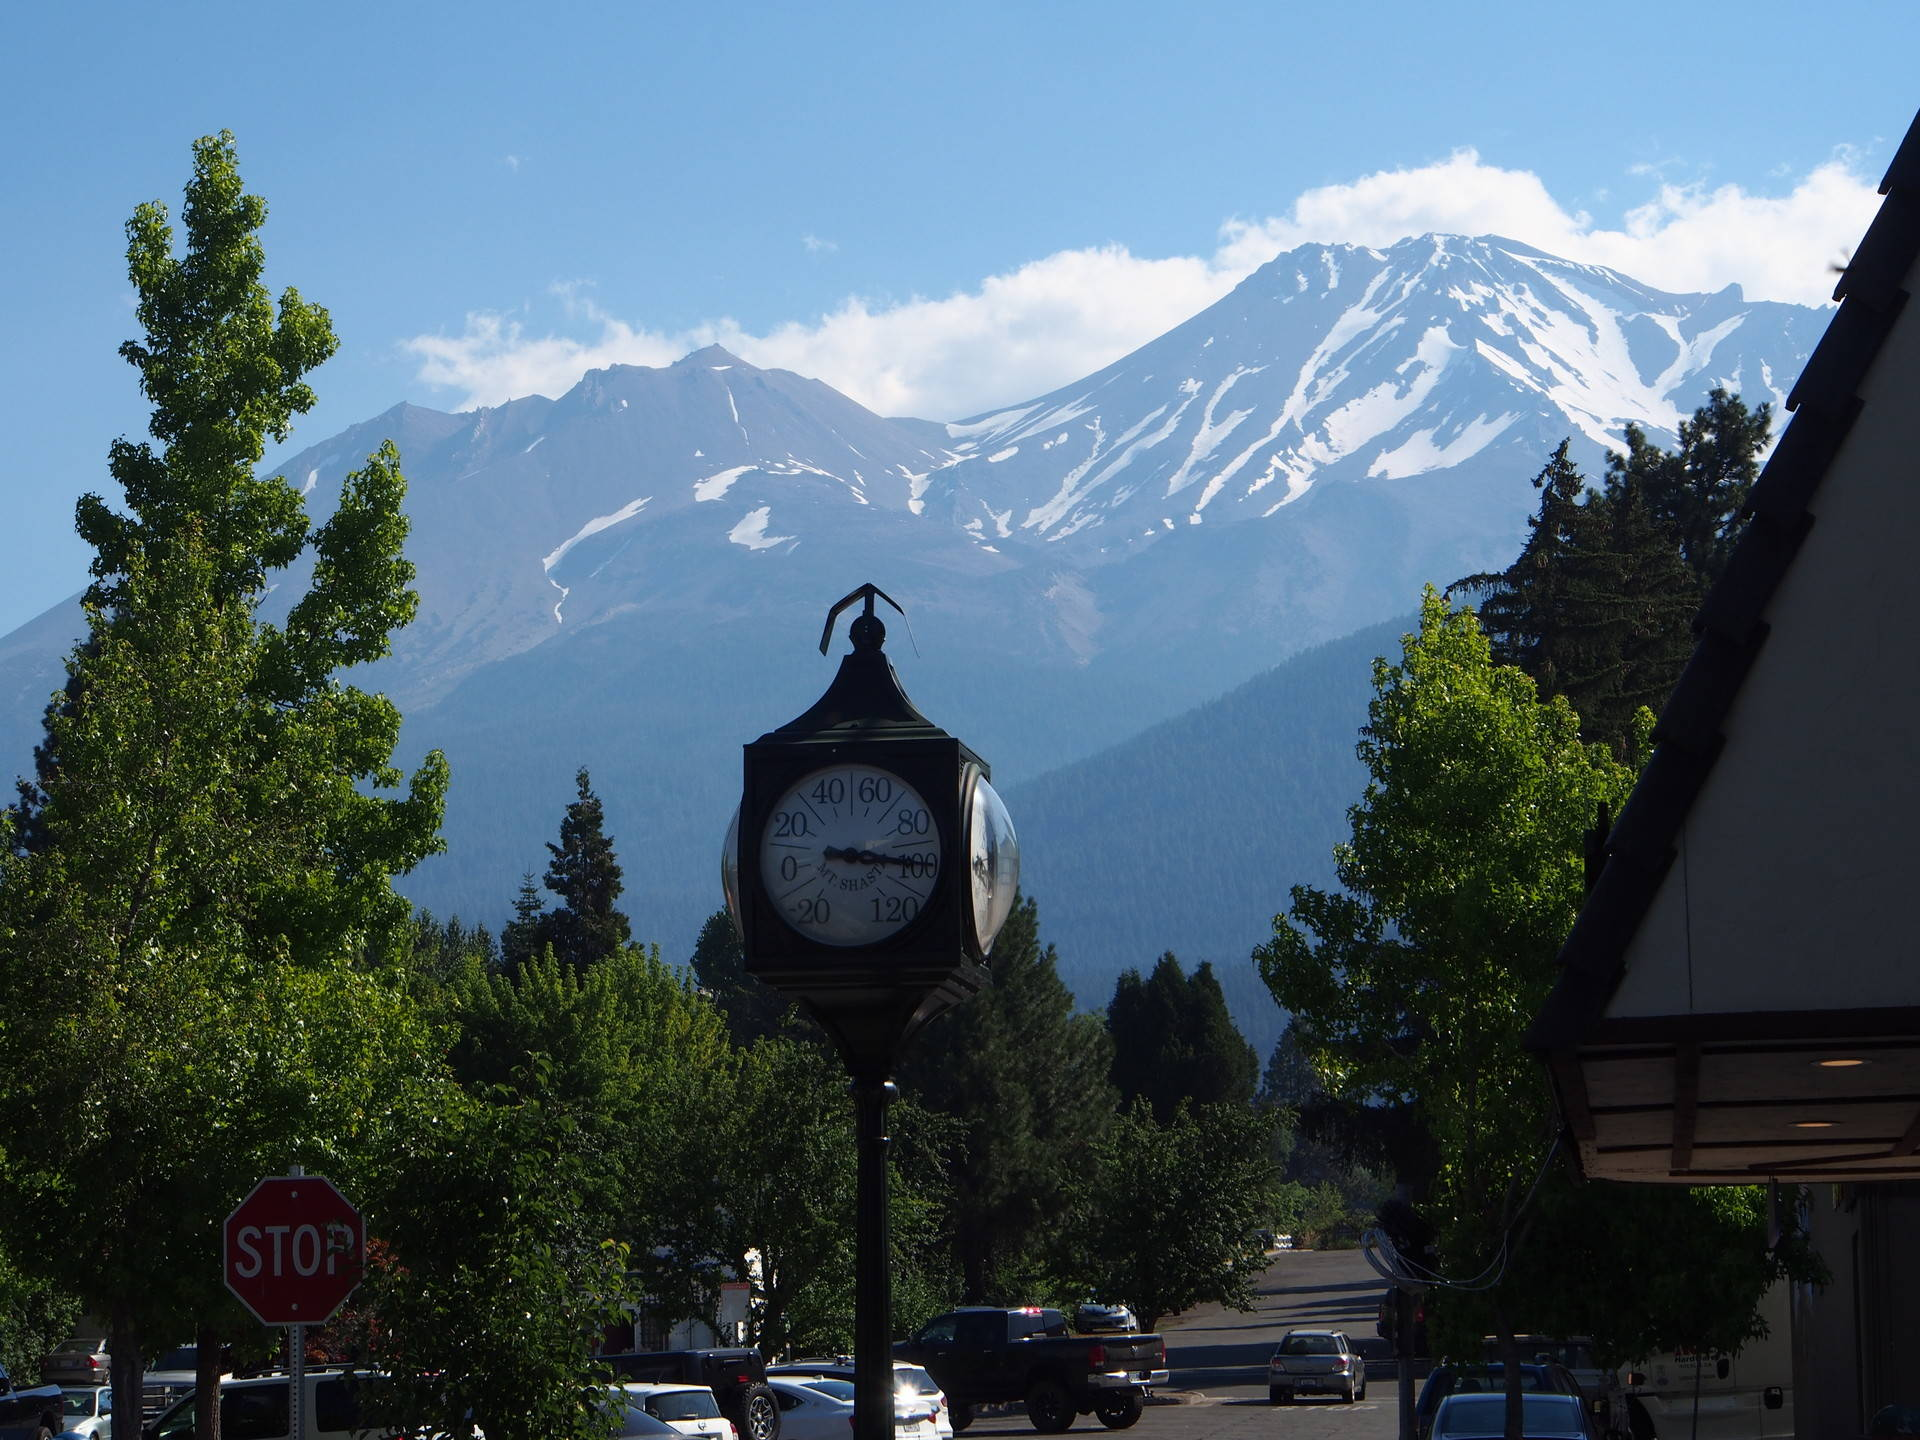 There are three main theories that explain the origin of the mysterious hole dug into Mount Shasta, and each theory tells a different story about the region's history.  Cat Schuknecht/KQED